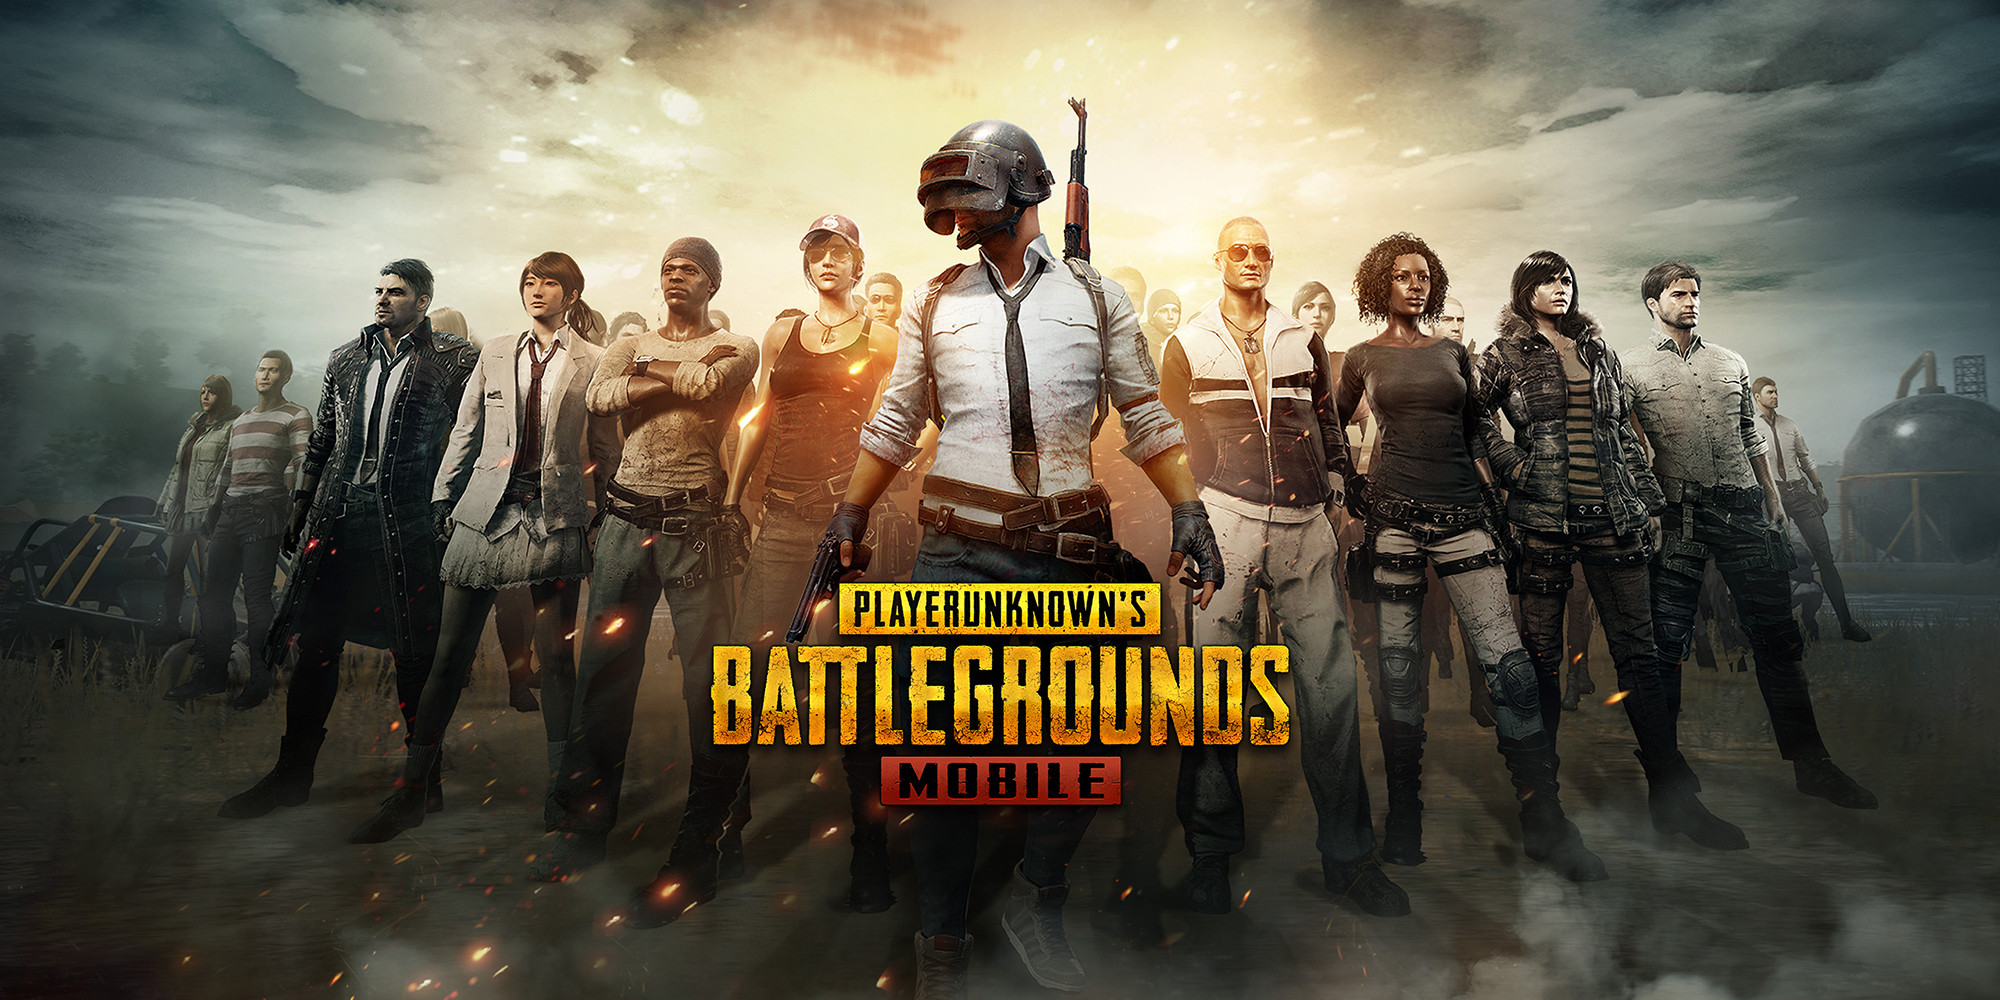 Pubg Mobile All The Details: PUBG Mobile Adds Prime Subscriptions For Android And IOS